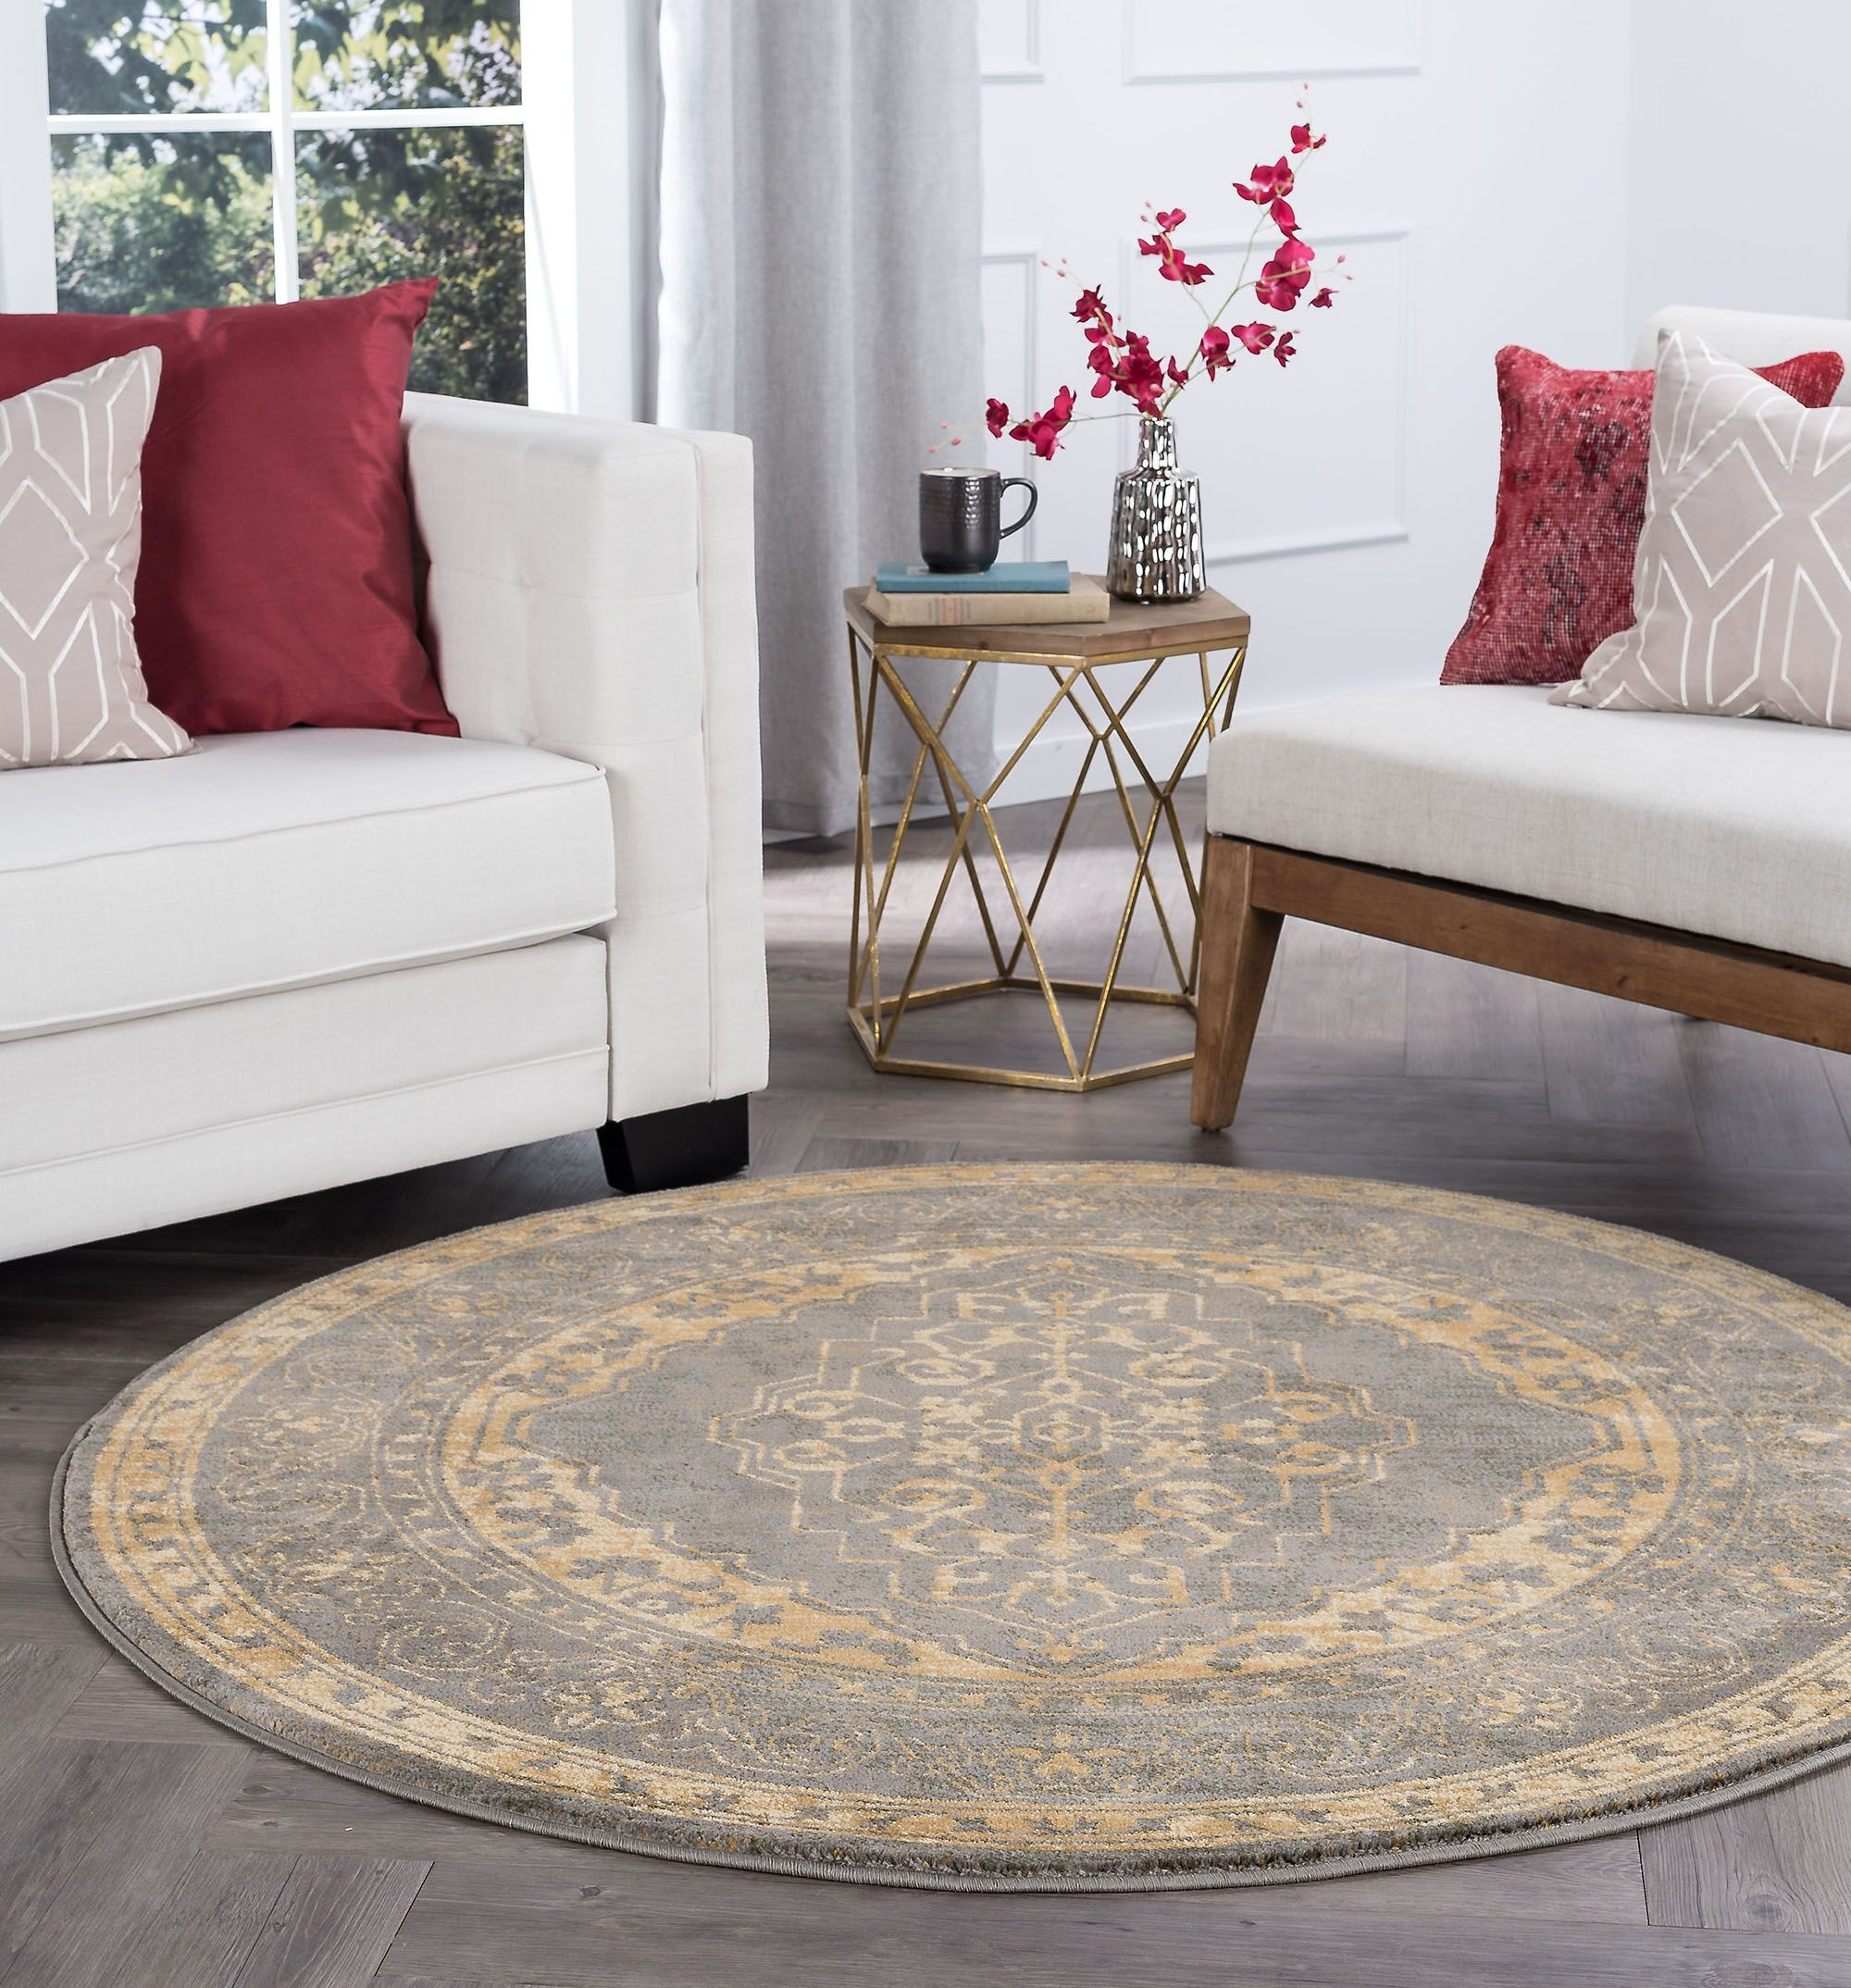 Ramm Transitional Border Ivory Area Rug Rug Size: 5'3'' Round